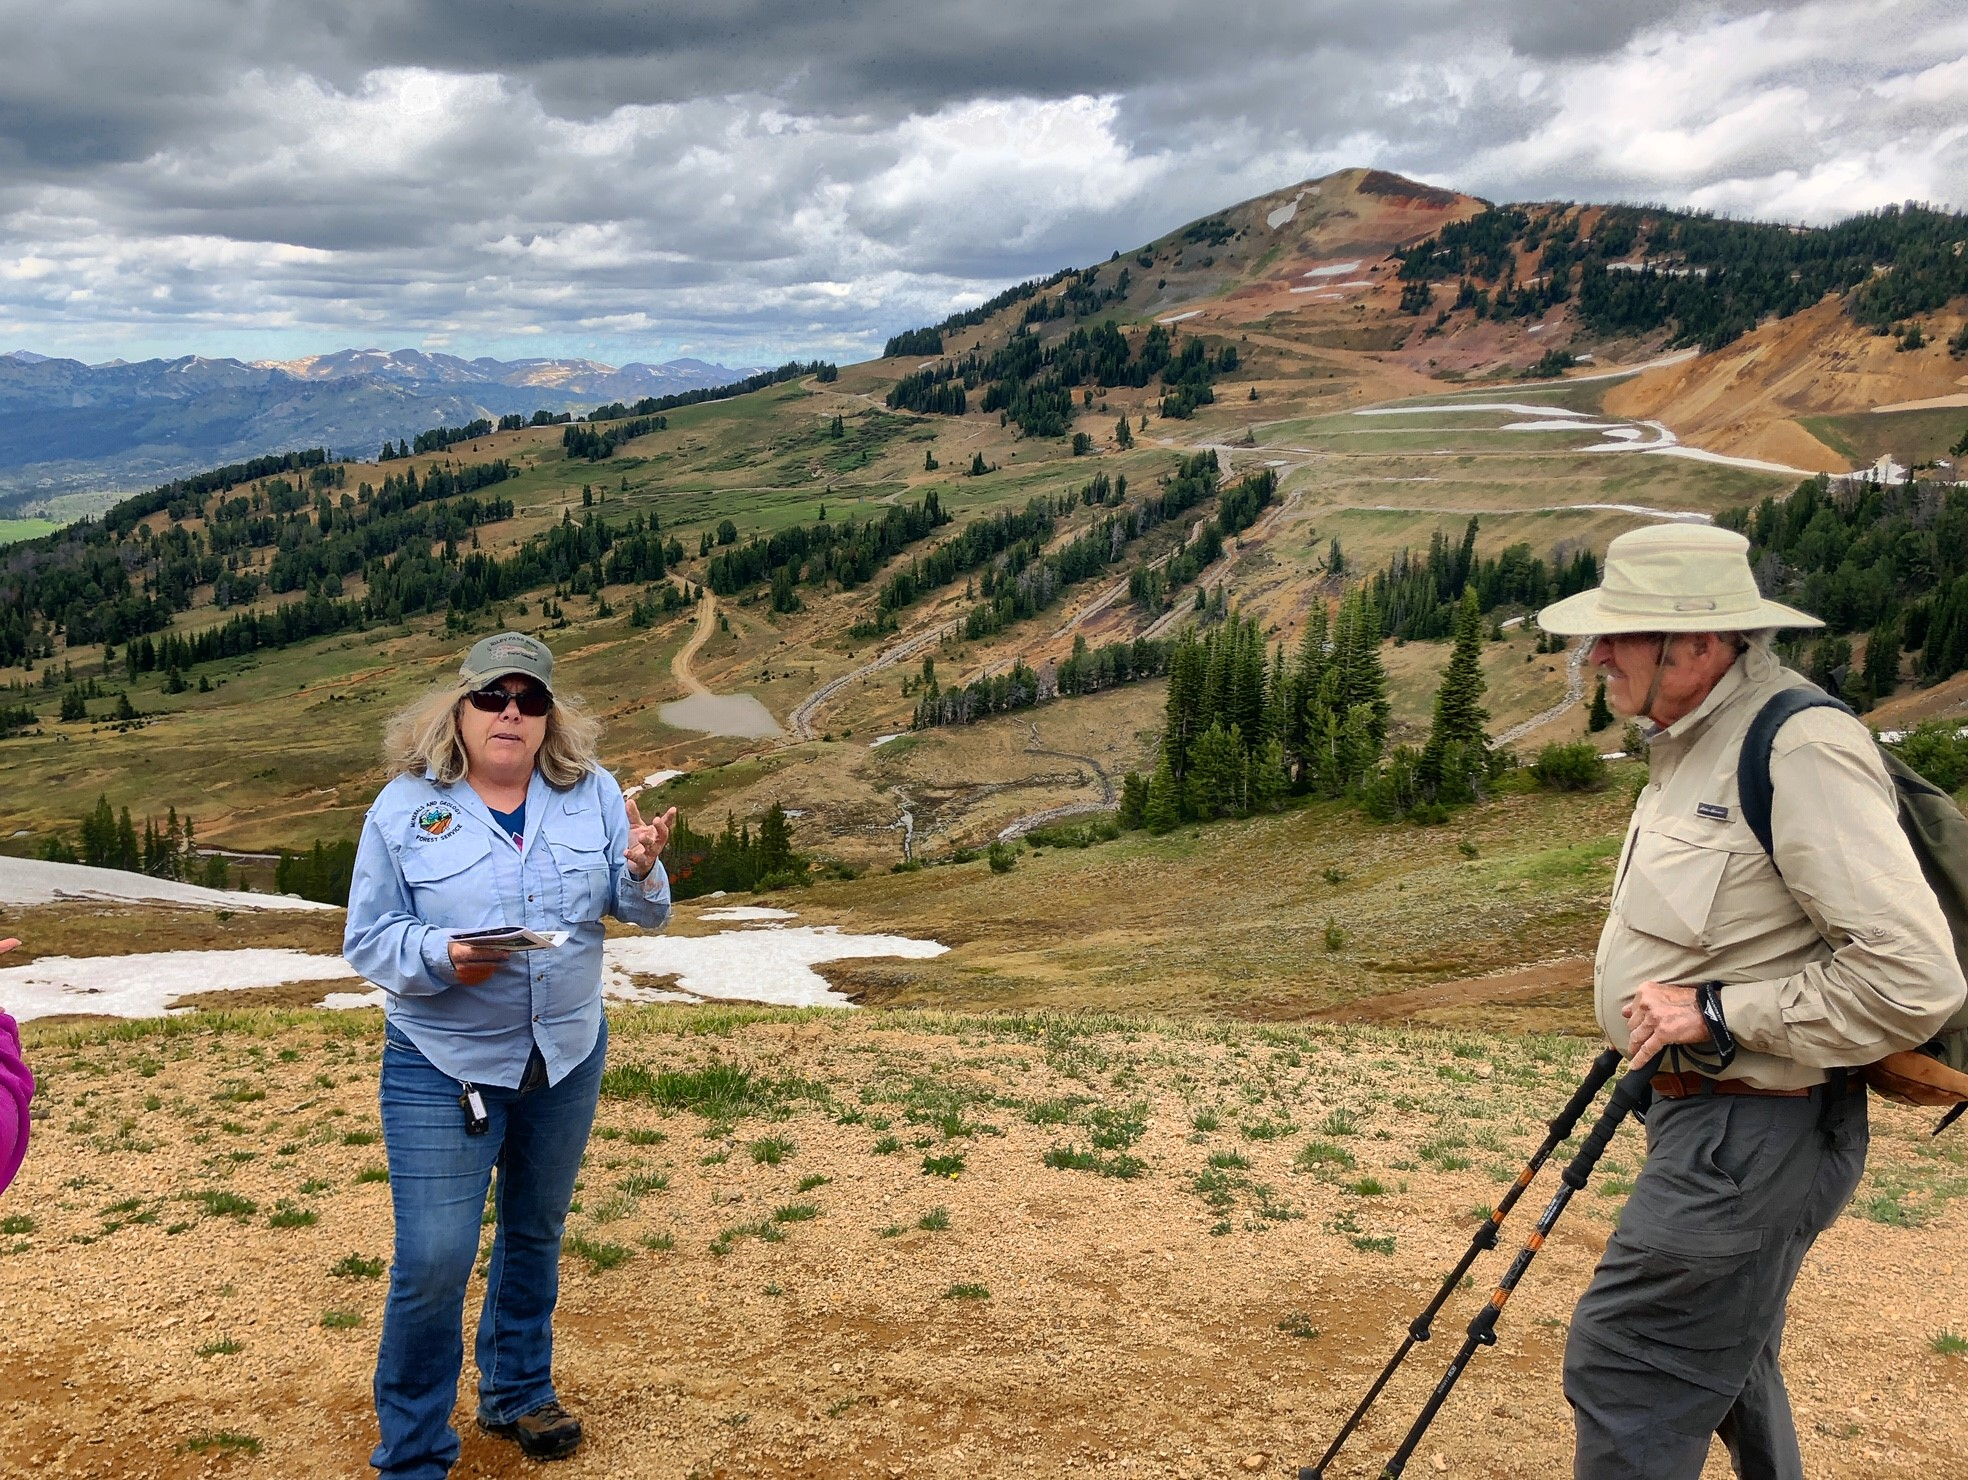 Forest Service employee Mary Beth Marks speaks at the former McLaren mining site on the July 18th tour. (Photo GYC/Joe Josephson.)